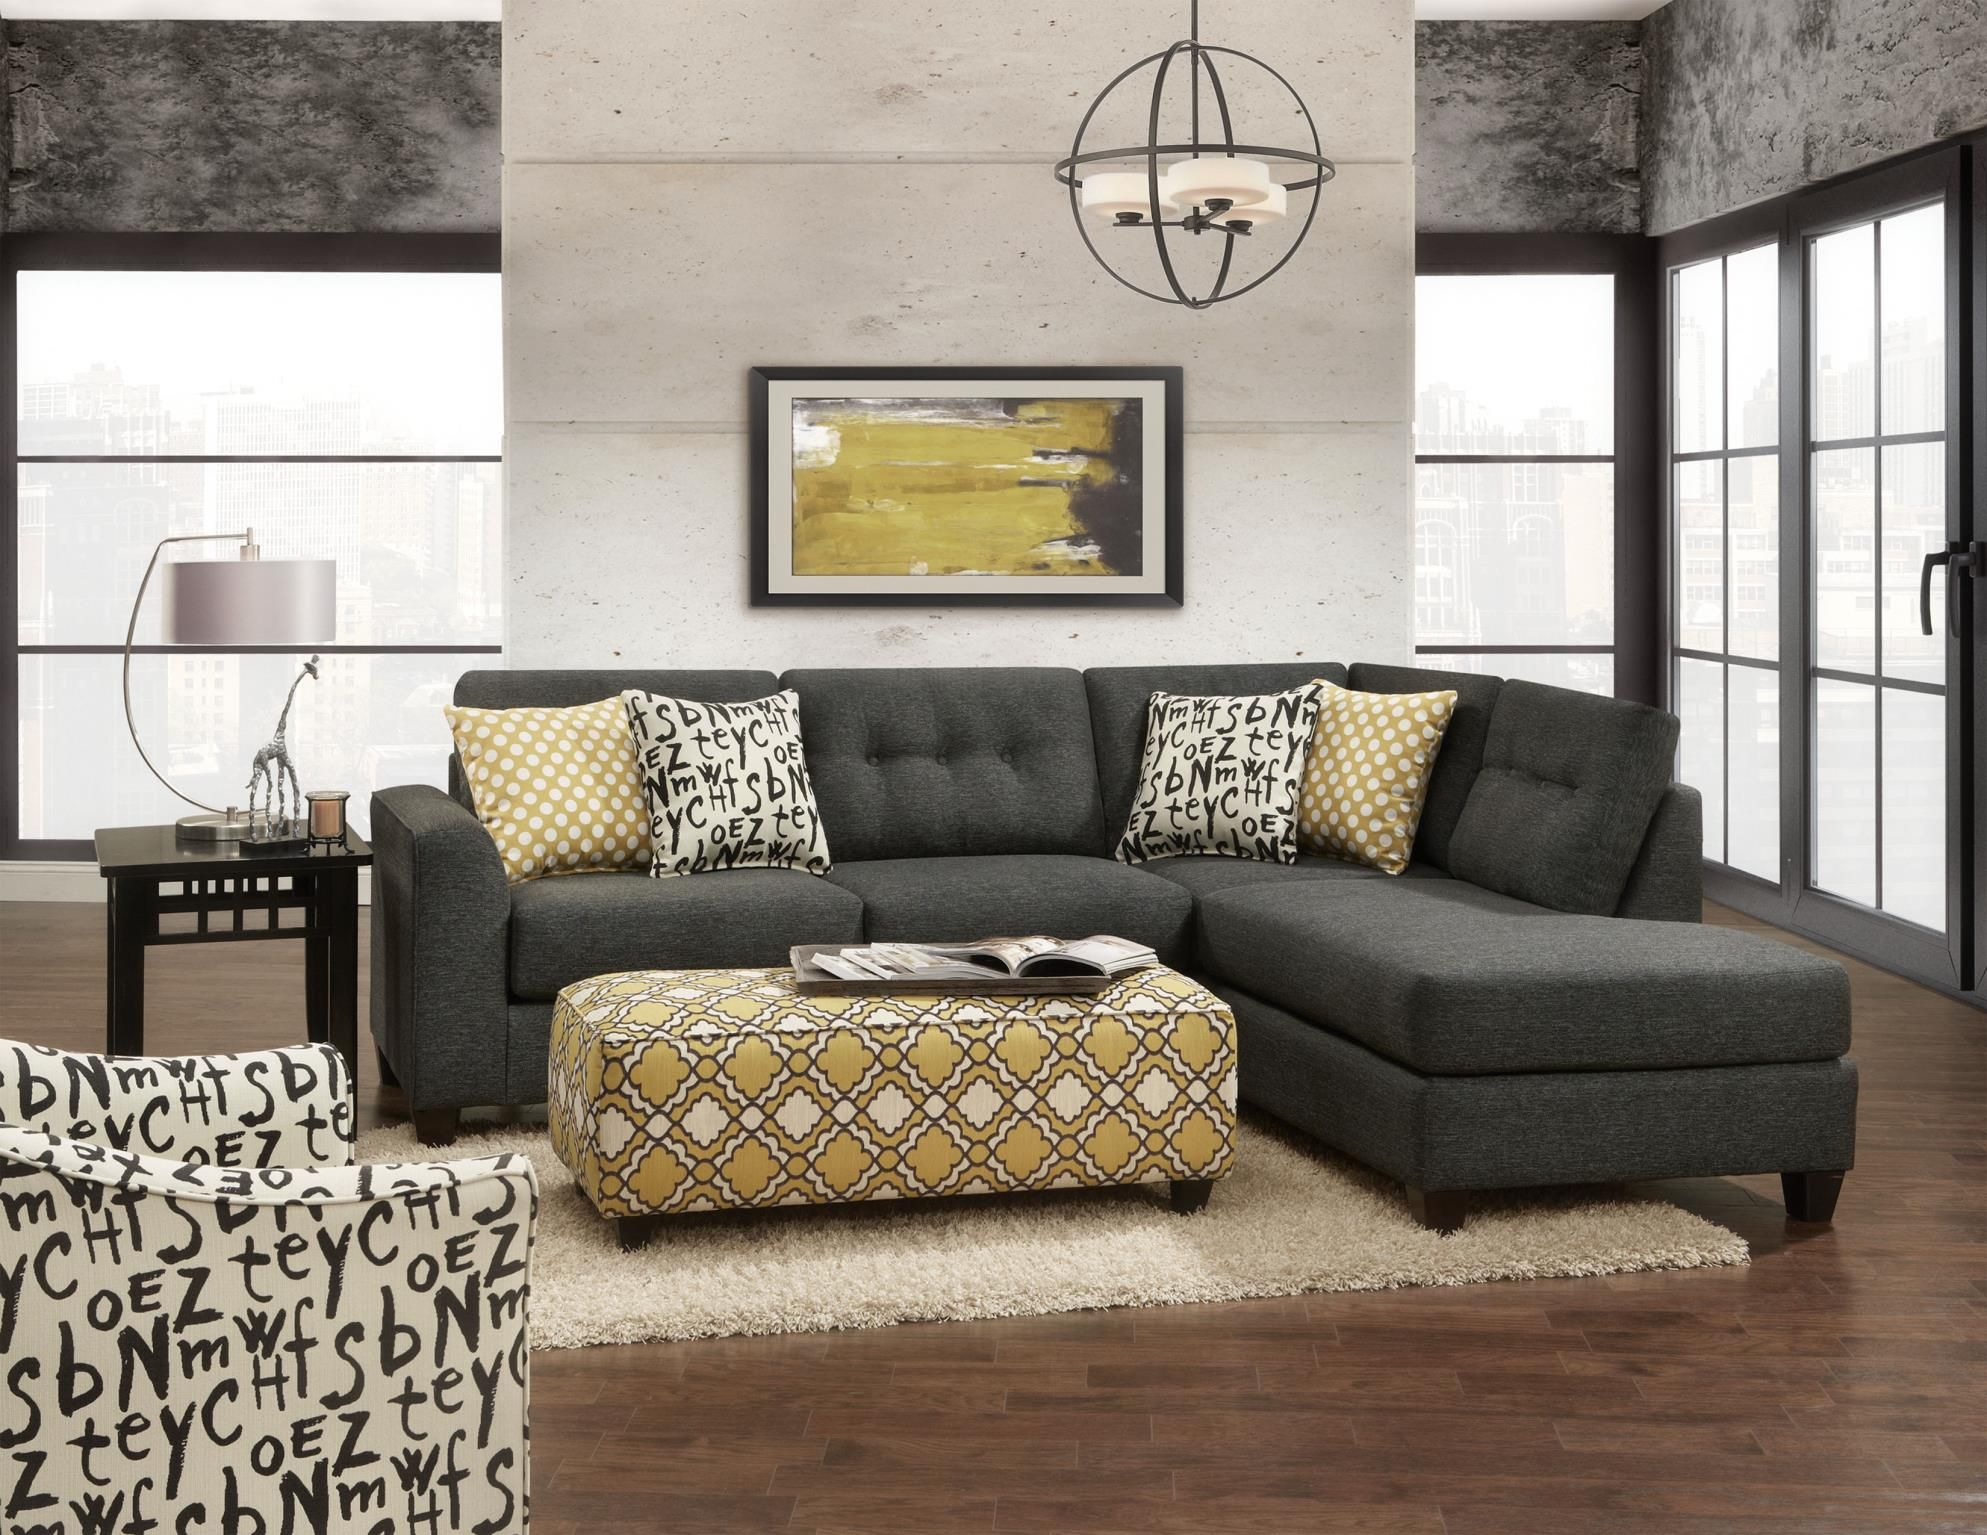 1515 1516 Max Ebony Sectional by Fusion Sofas